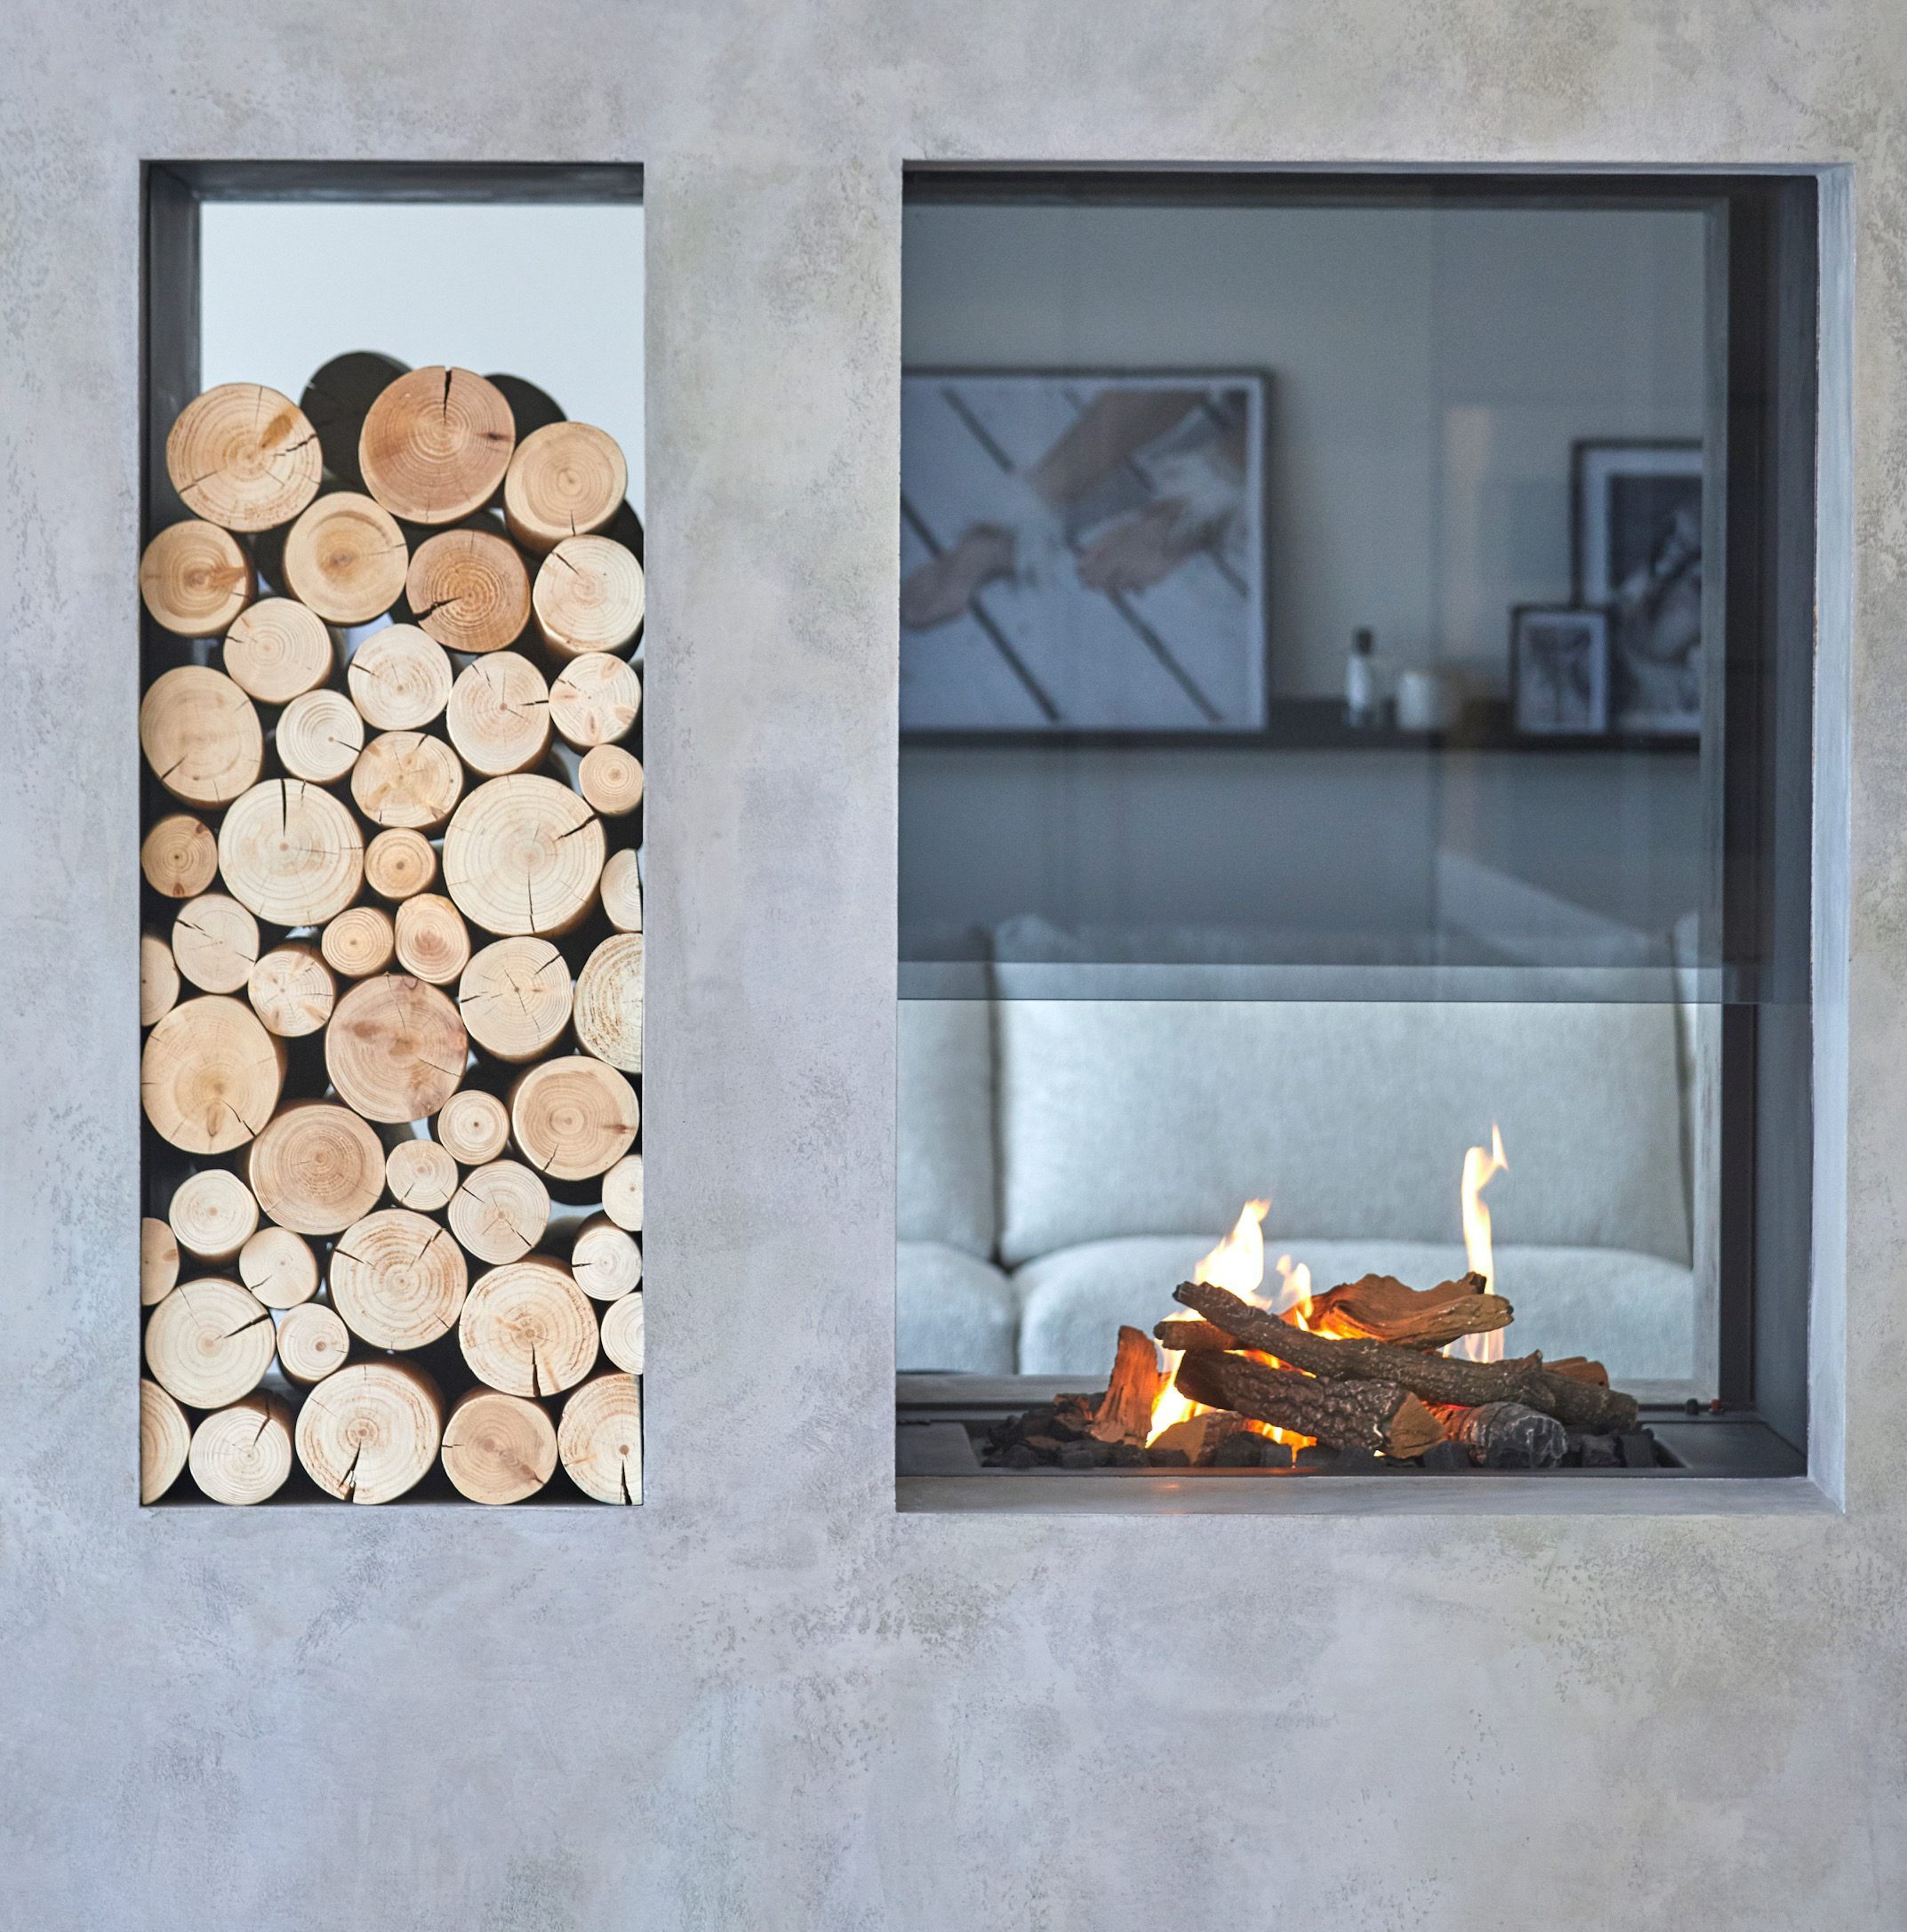 Modus Fireplaces - Wall Fires - Small Hole in the Wall Fireplace